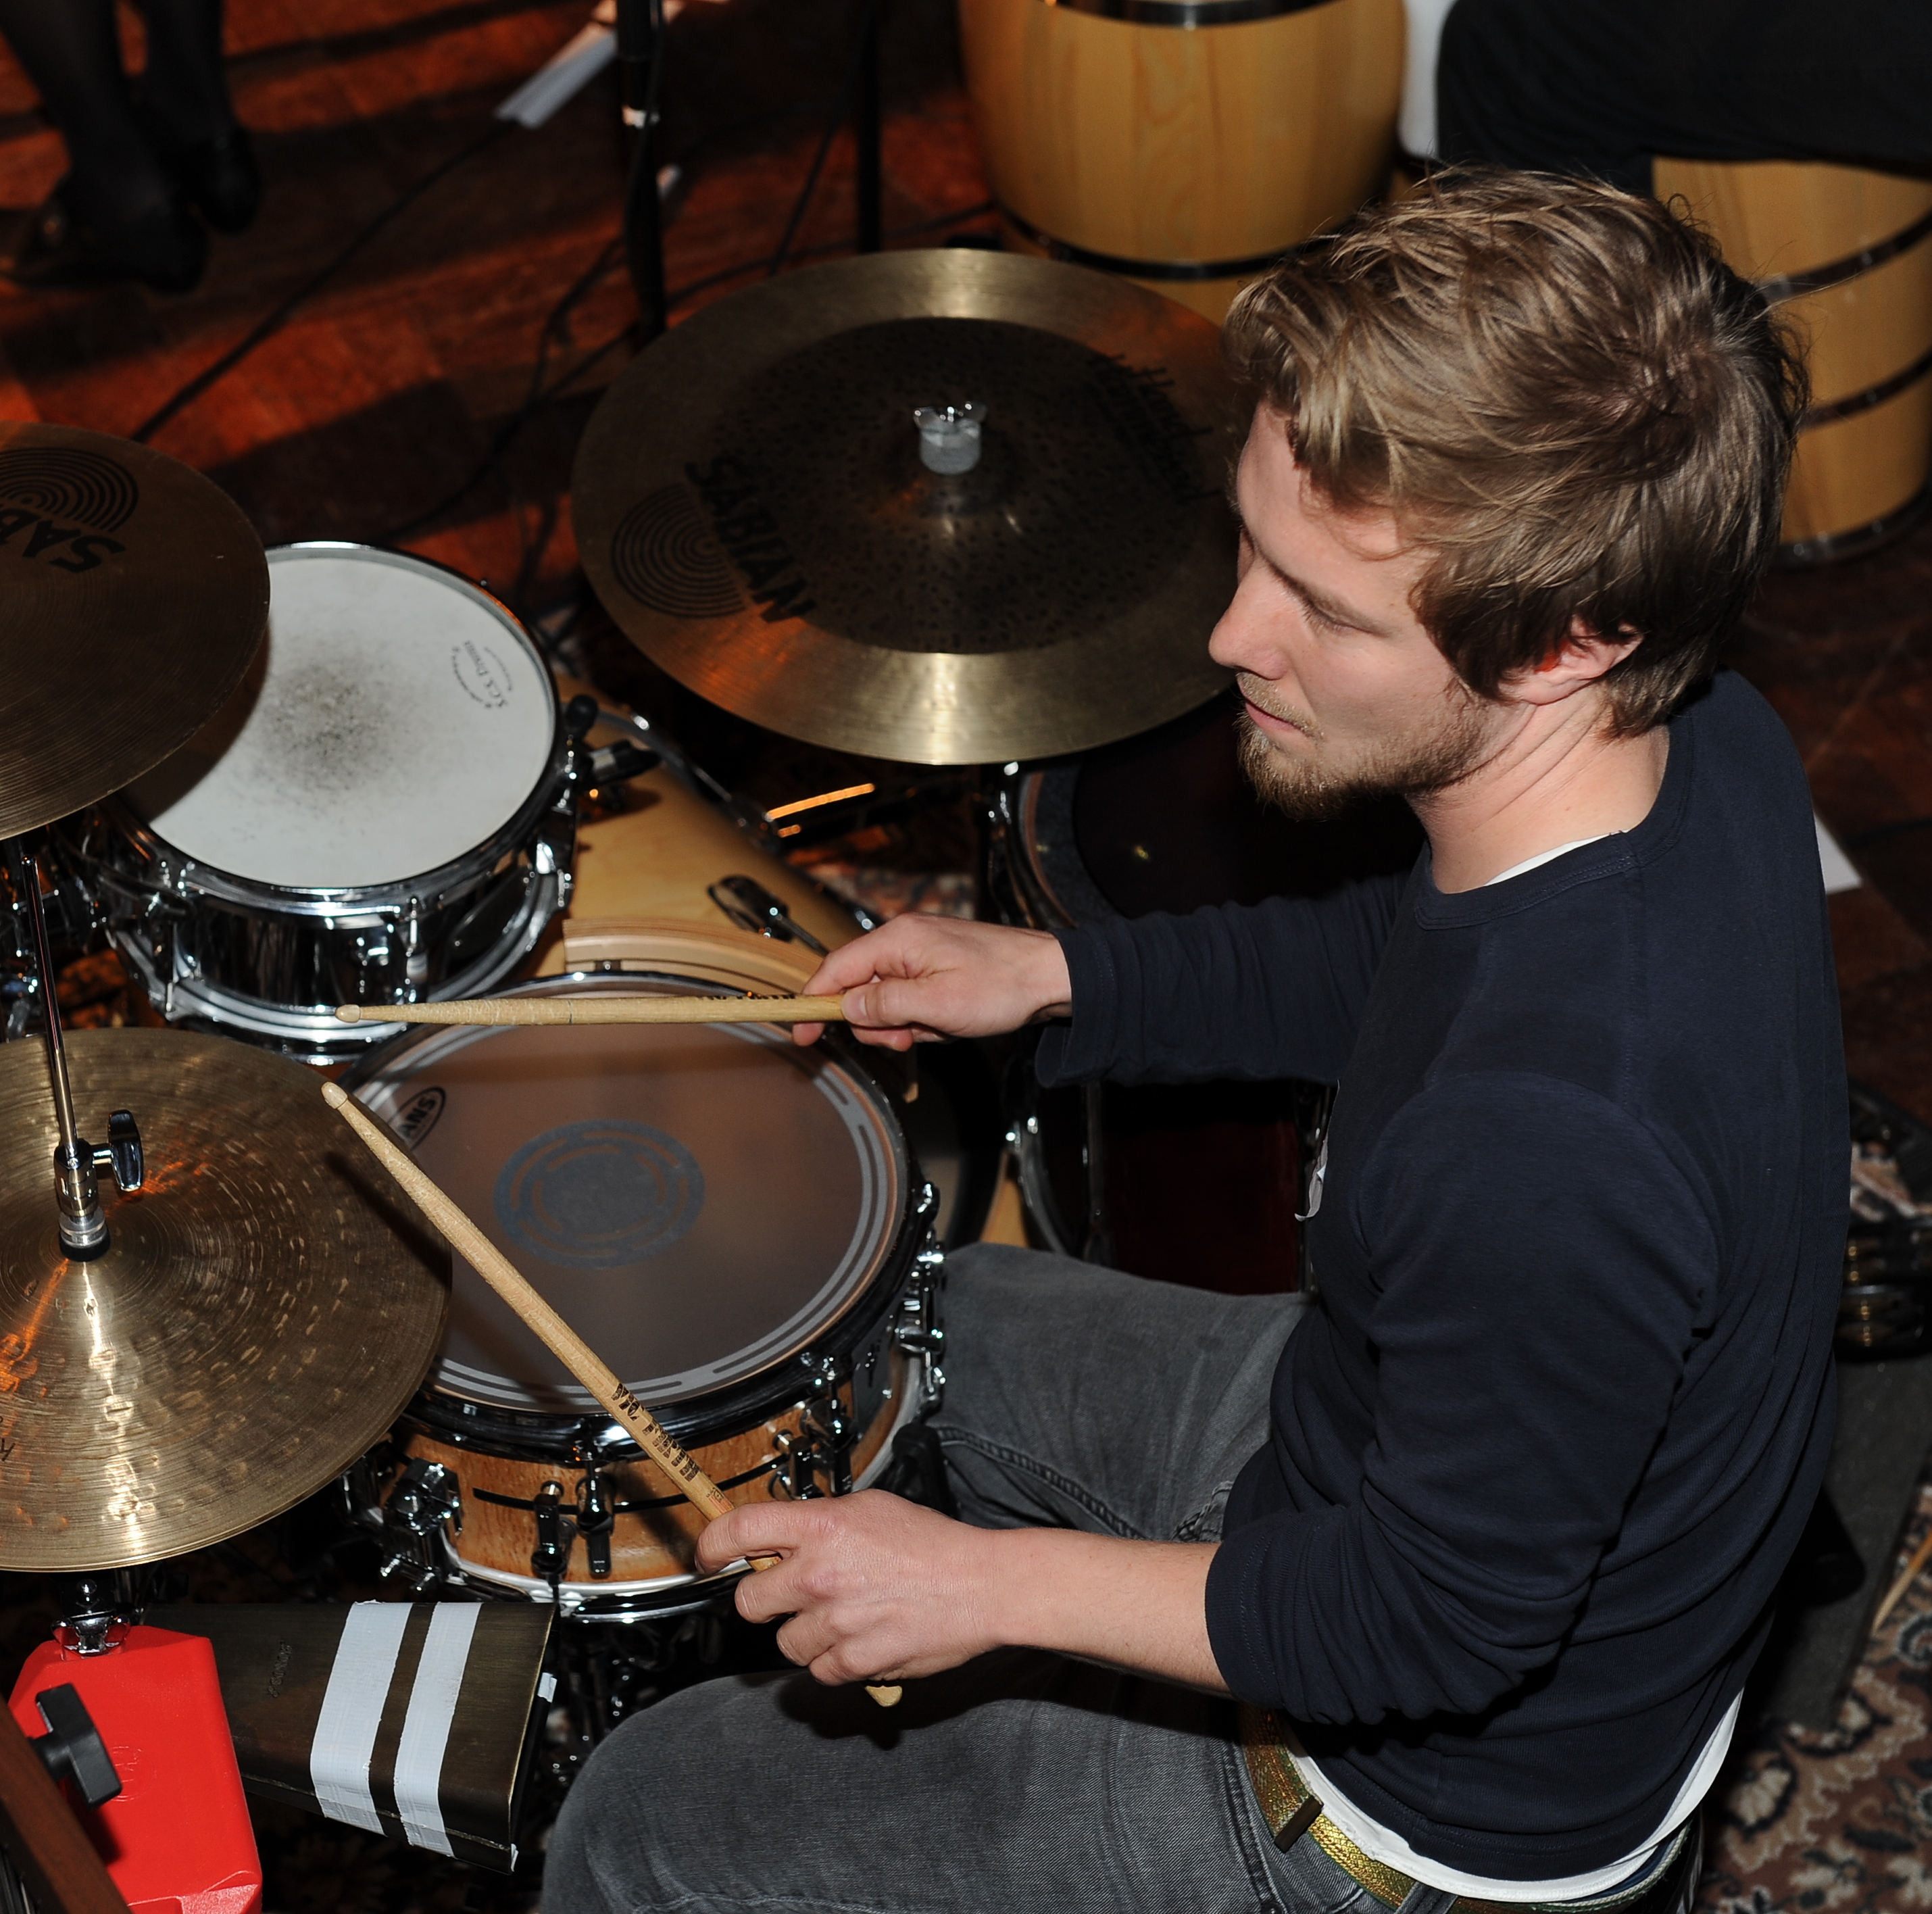 Simon on drums